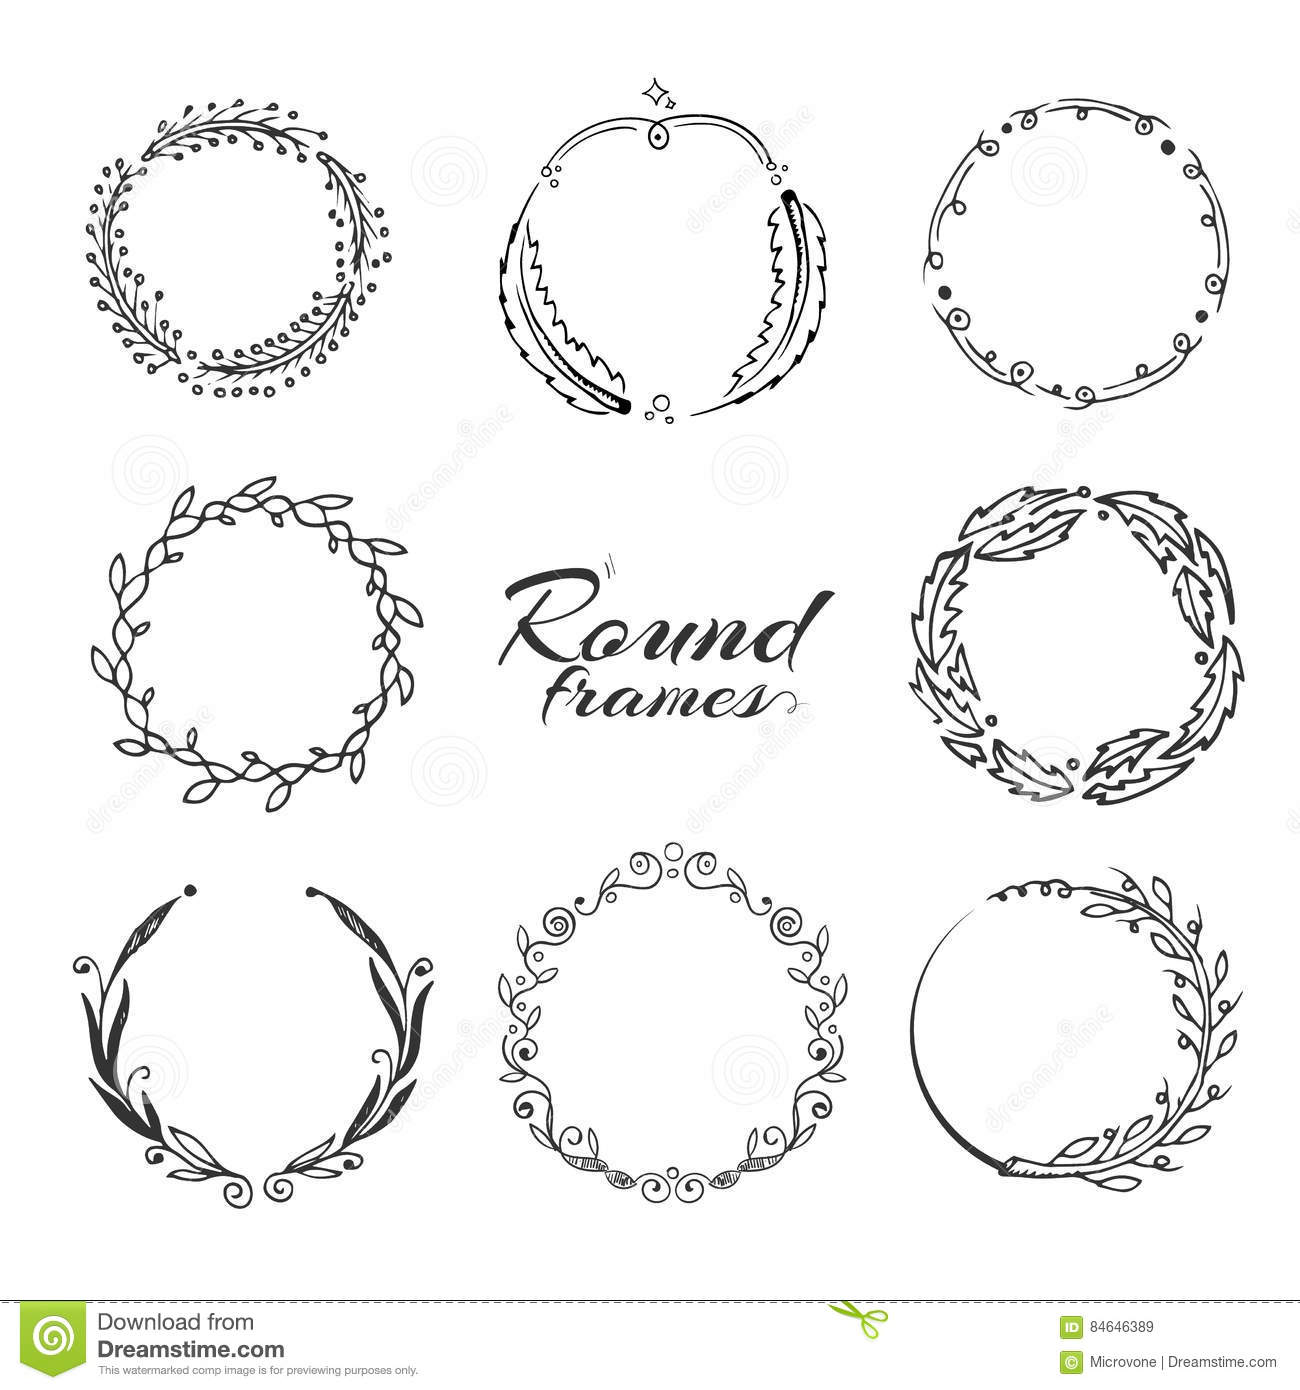 Round frame with decorative branch vector illustration stock - Branch With Leaves Laurel Wreath Floral Circle Frames For Decoration Stock Vector